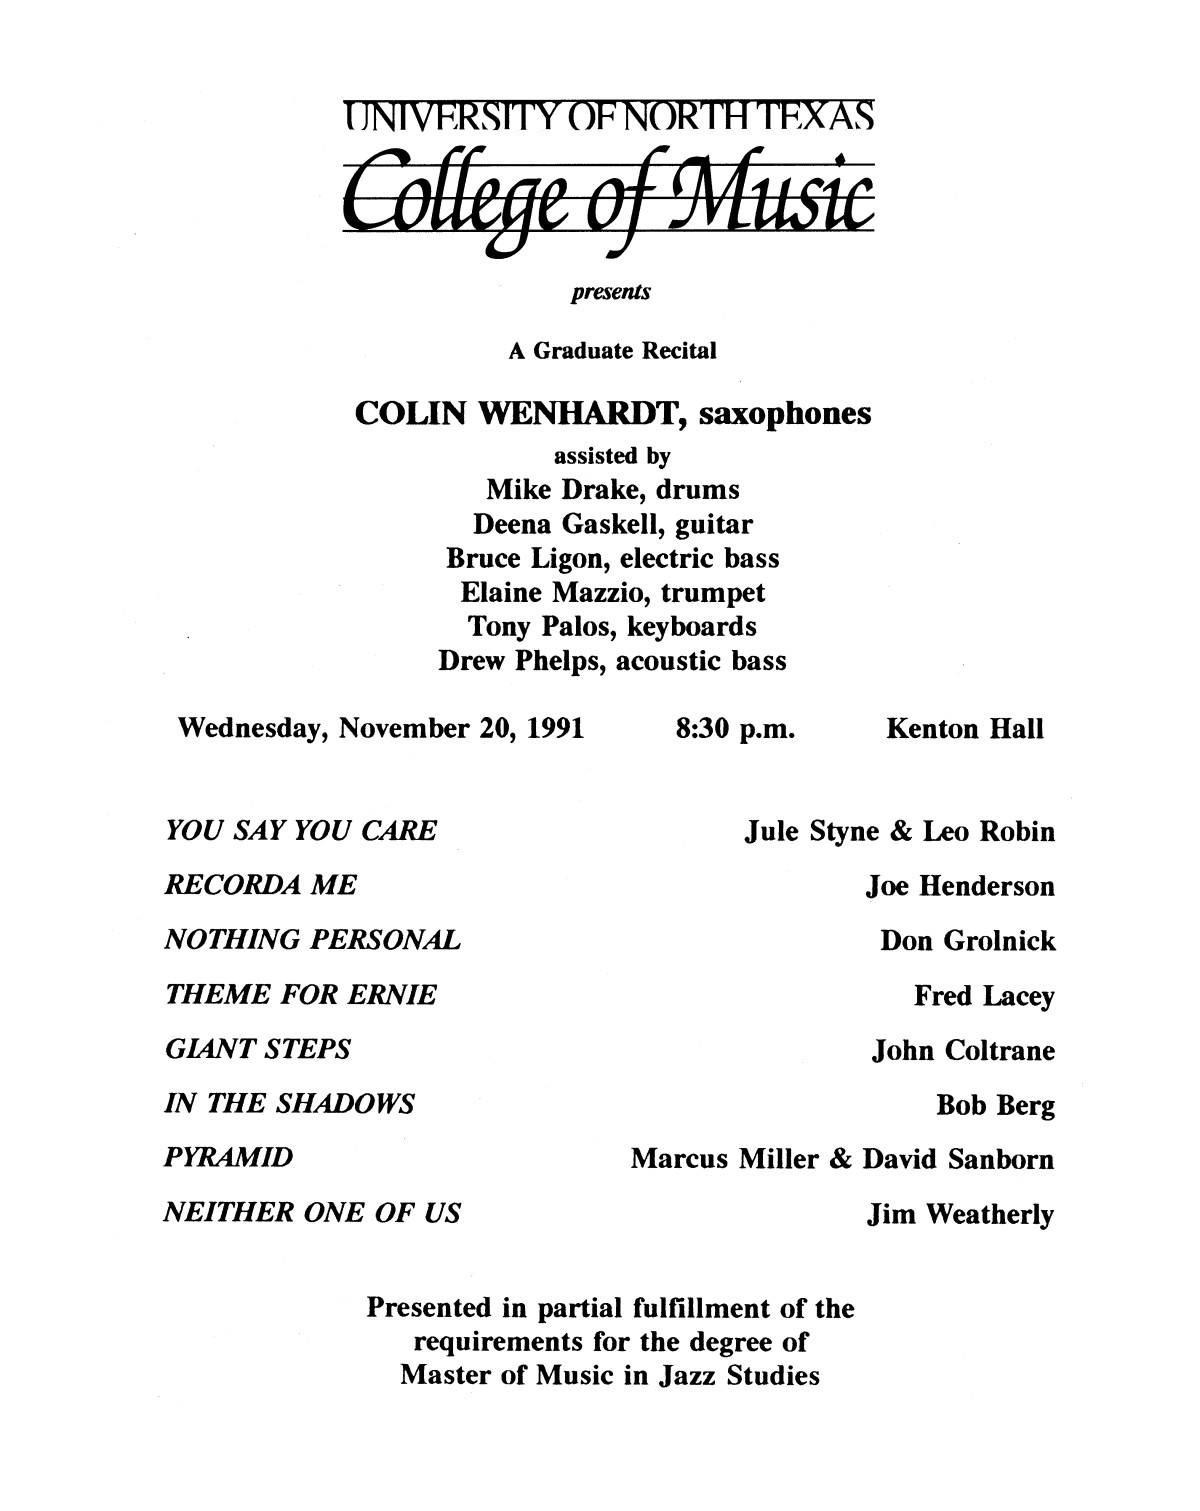 College of Music program book 1991-1992 Student Performances Vol. 2                                                                                                      [Sequence #]: 70 of 310